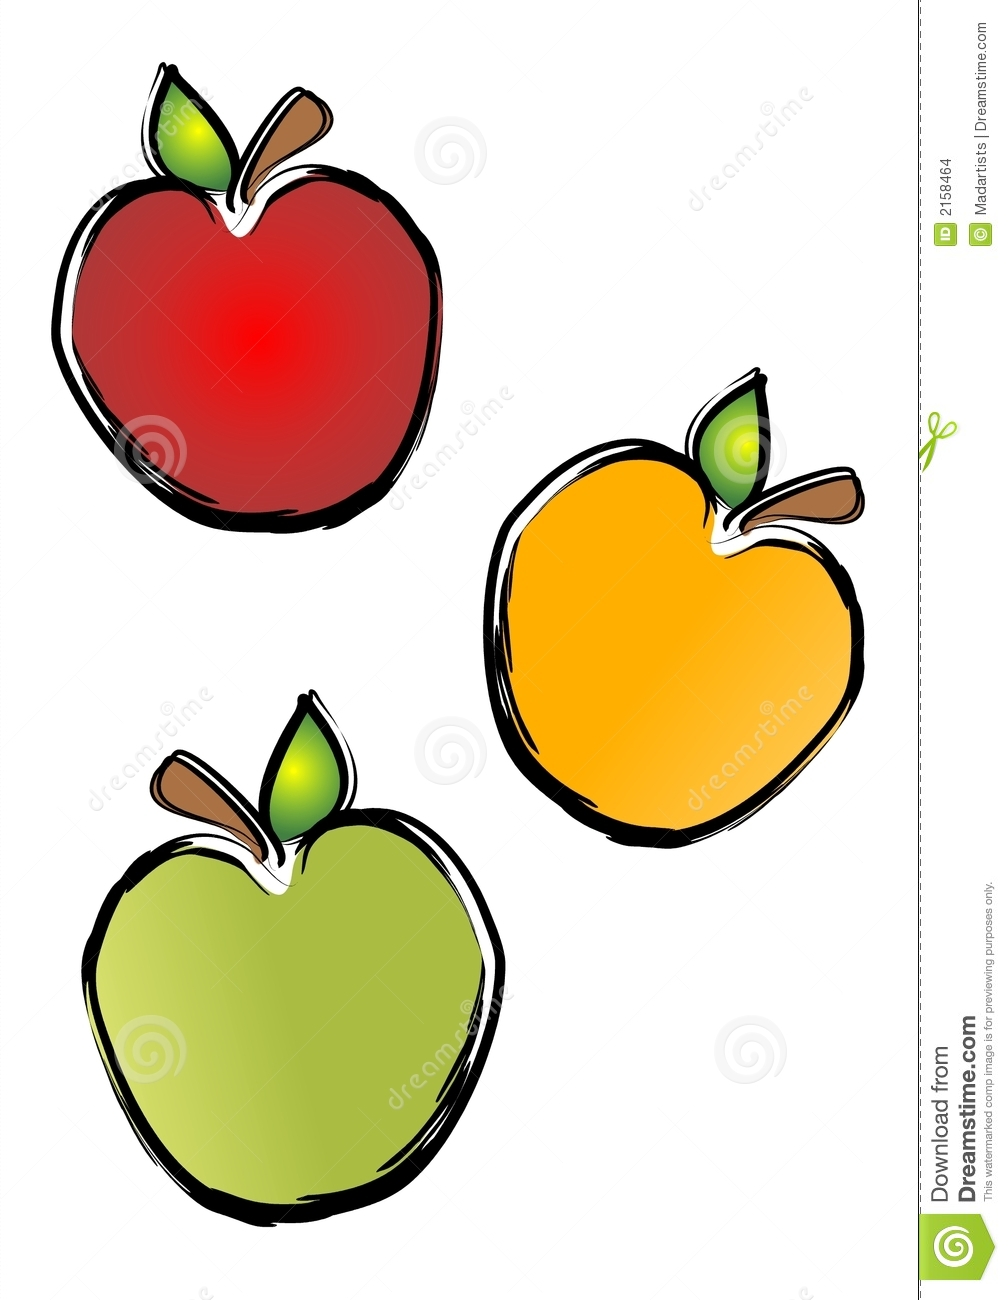 apples illustration in red, yellow and green on an isolated white ...